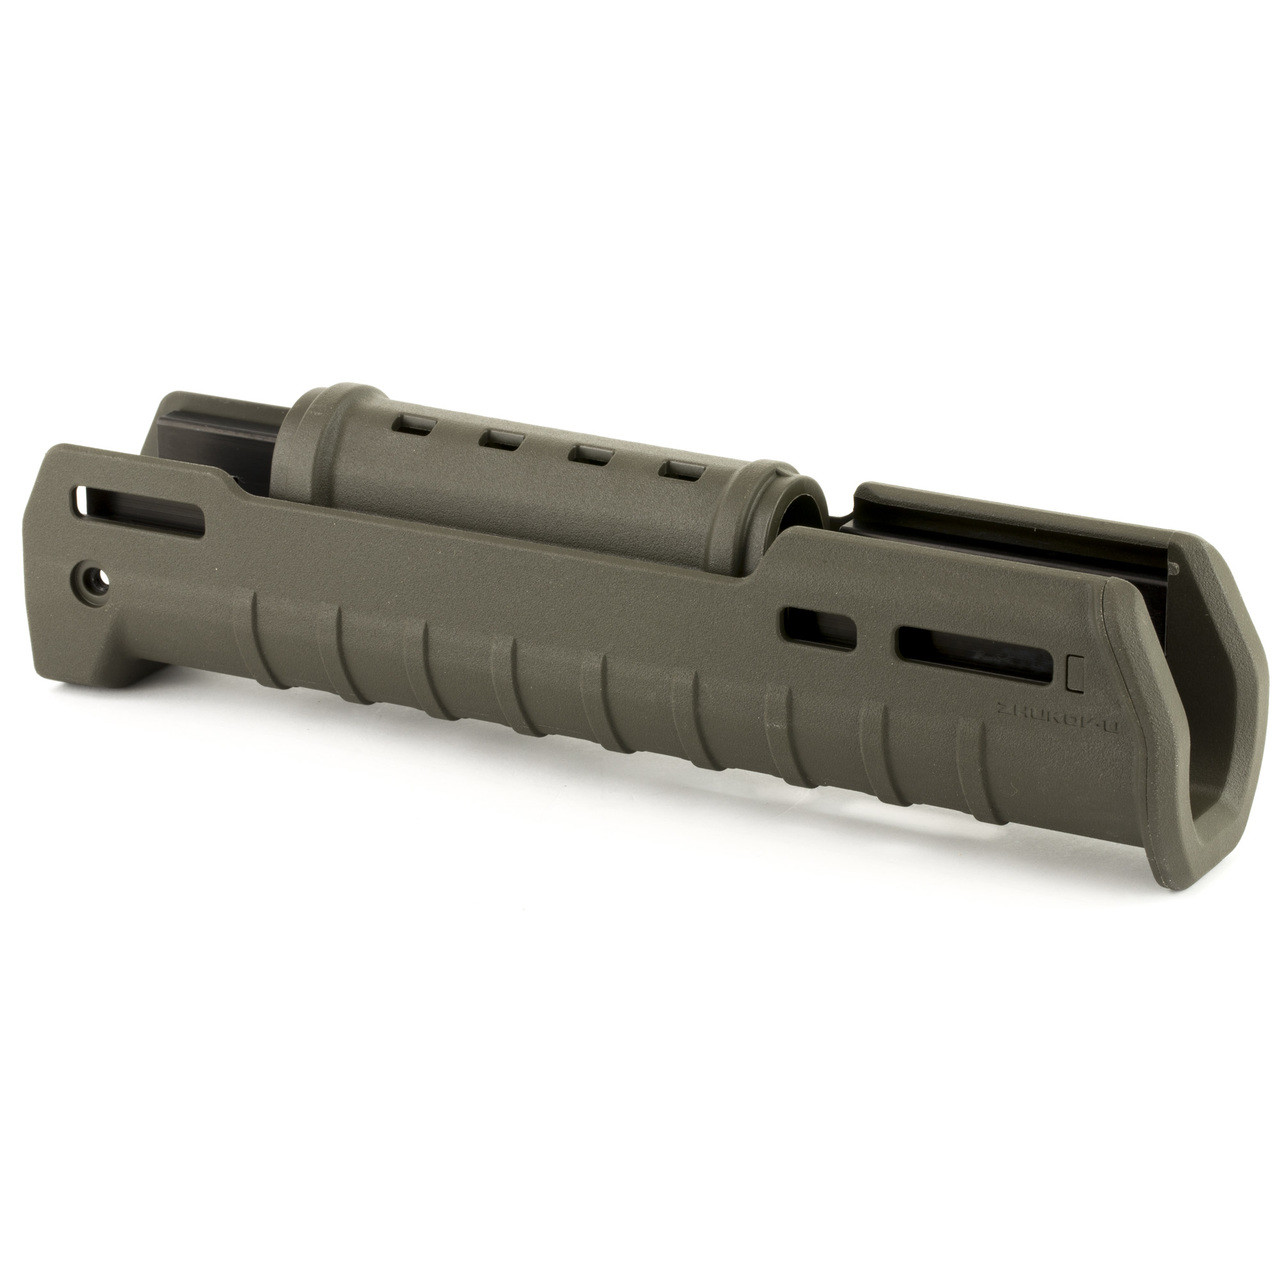 Magpul Industries Zhukov-U Handguard, Fits AK varients Except Yugo Pattern  Rifles or RPK Style Receivers, OD Green Polymer, 1 5